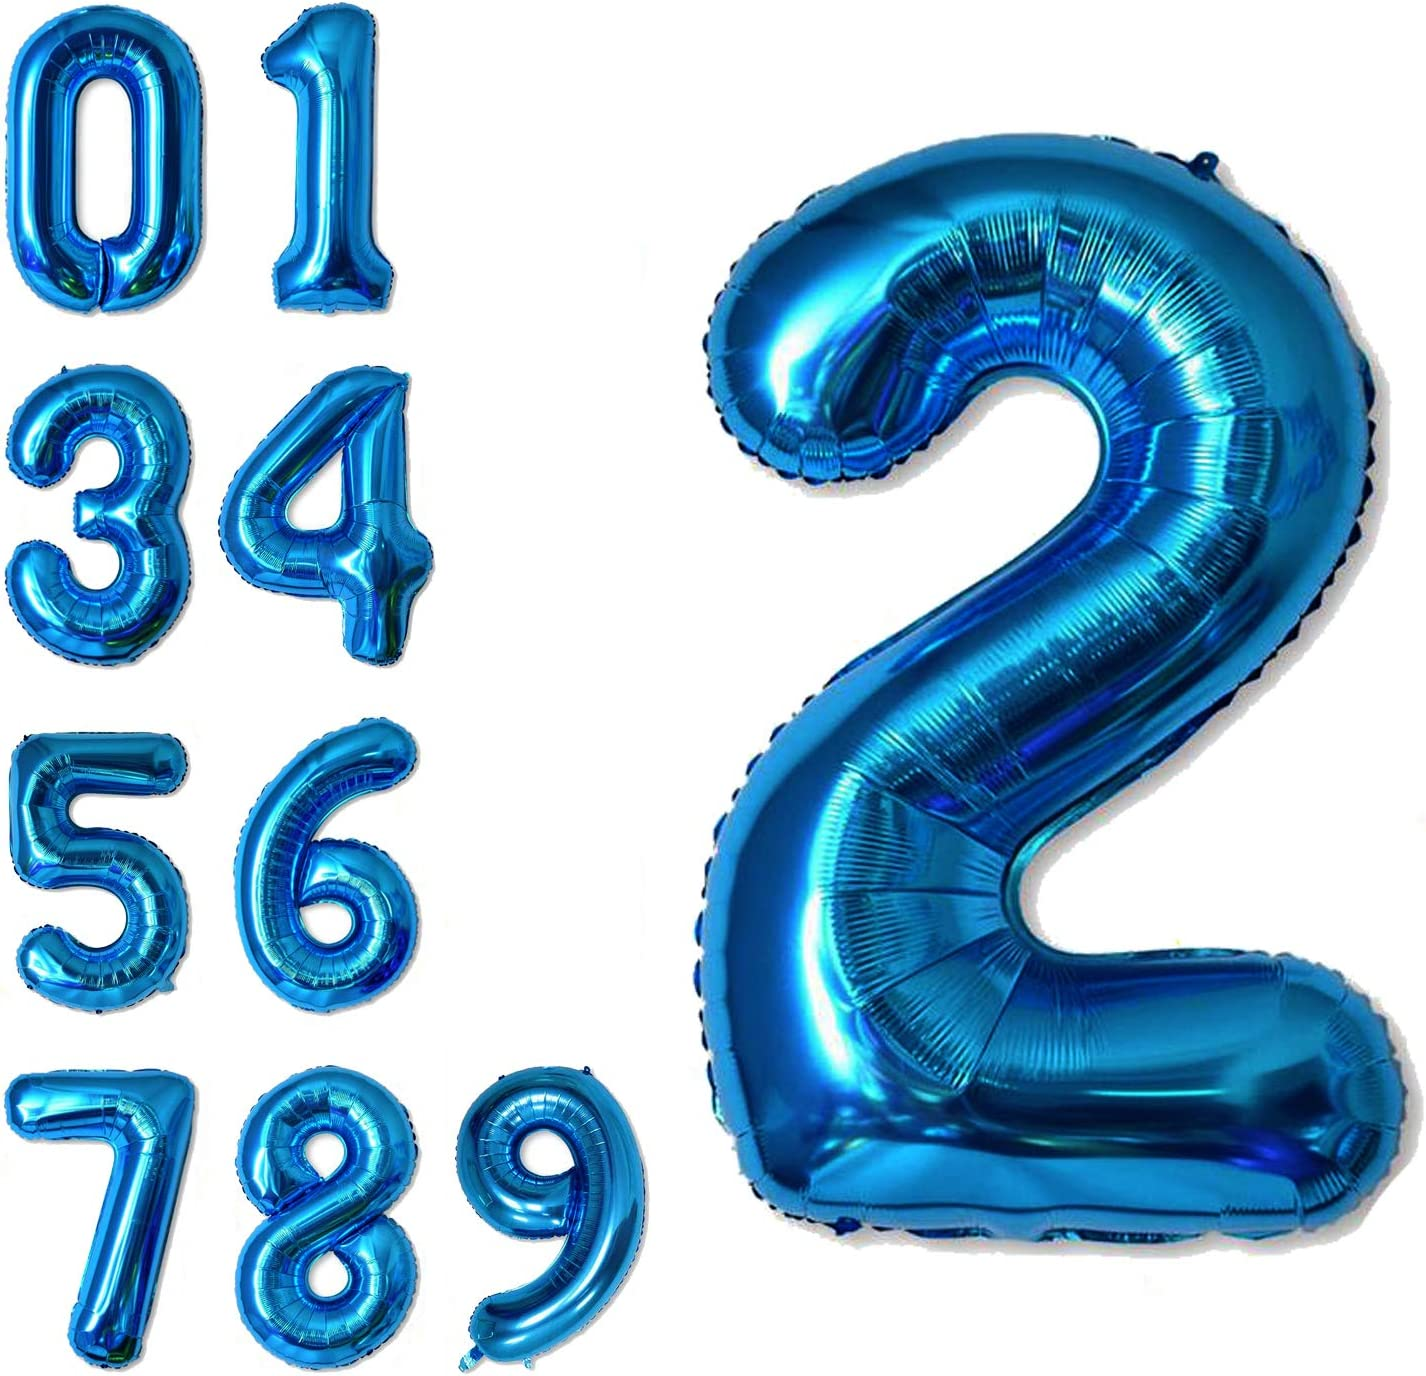 40 Inch Jumbo Blue Number 2 Balloon Giant Balloons Prom Balloons Helium Foil Mylar Huge Number Balloons for Birthday Party Decorations/Wedding/Anniversary